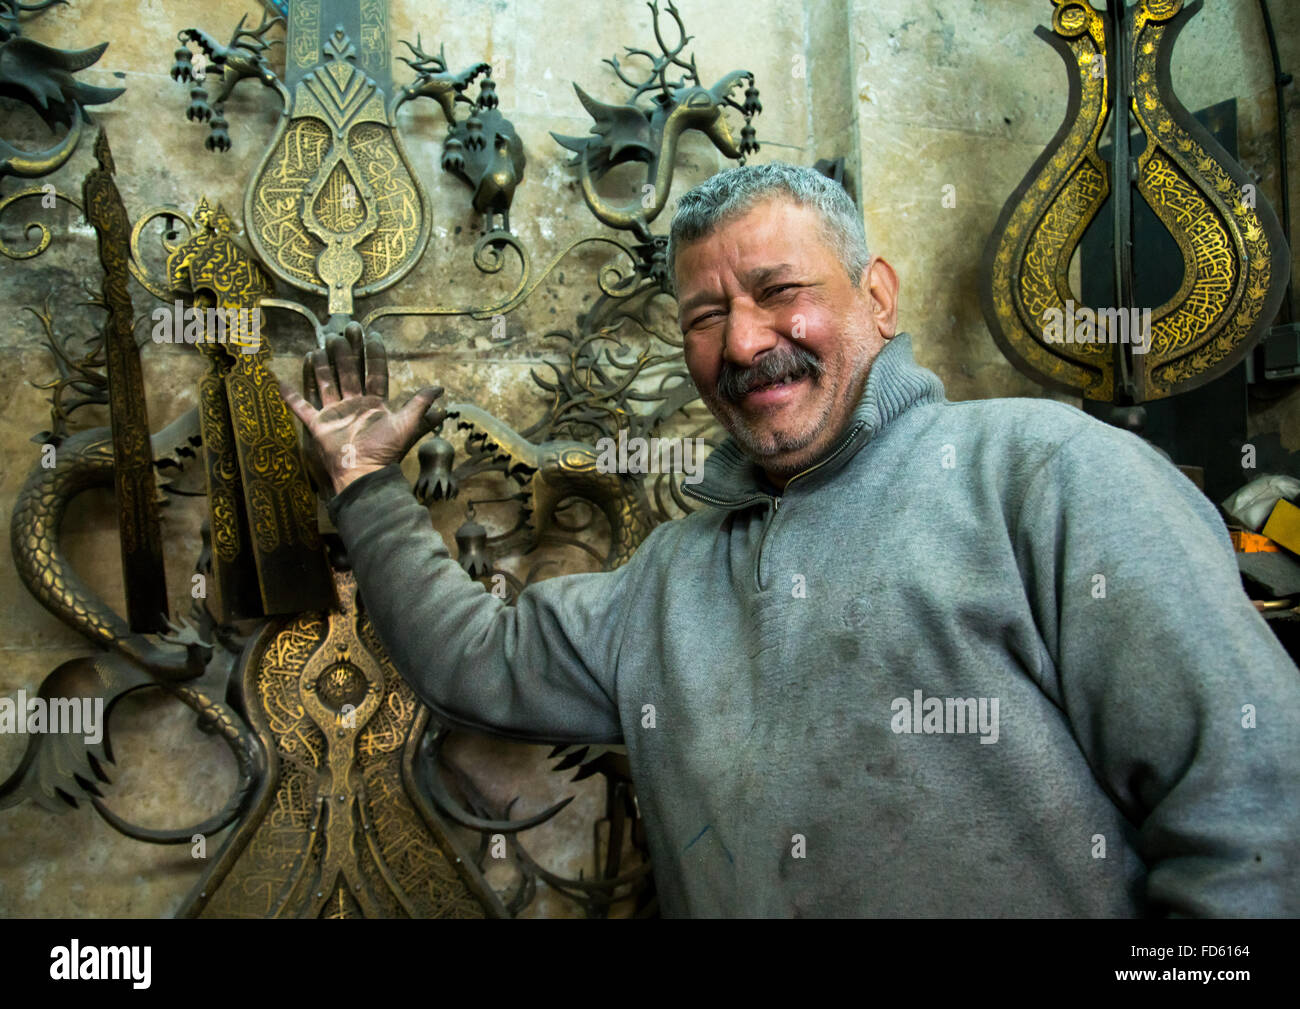 master safar fooladgar creating an alam, Central district, Tehran, Iran - Stock Image